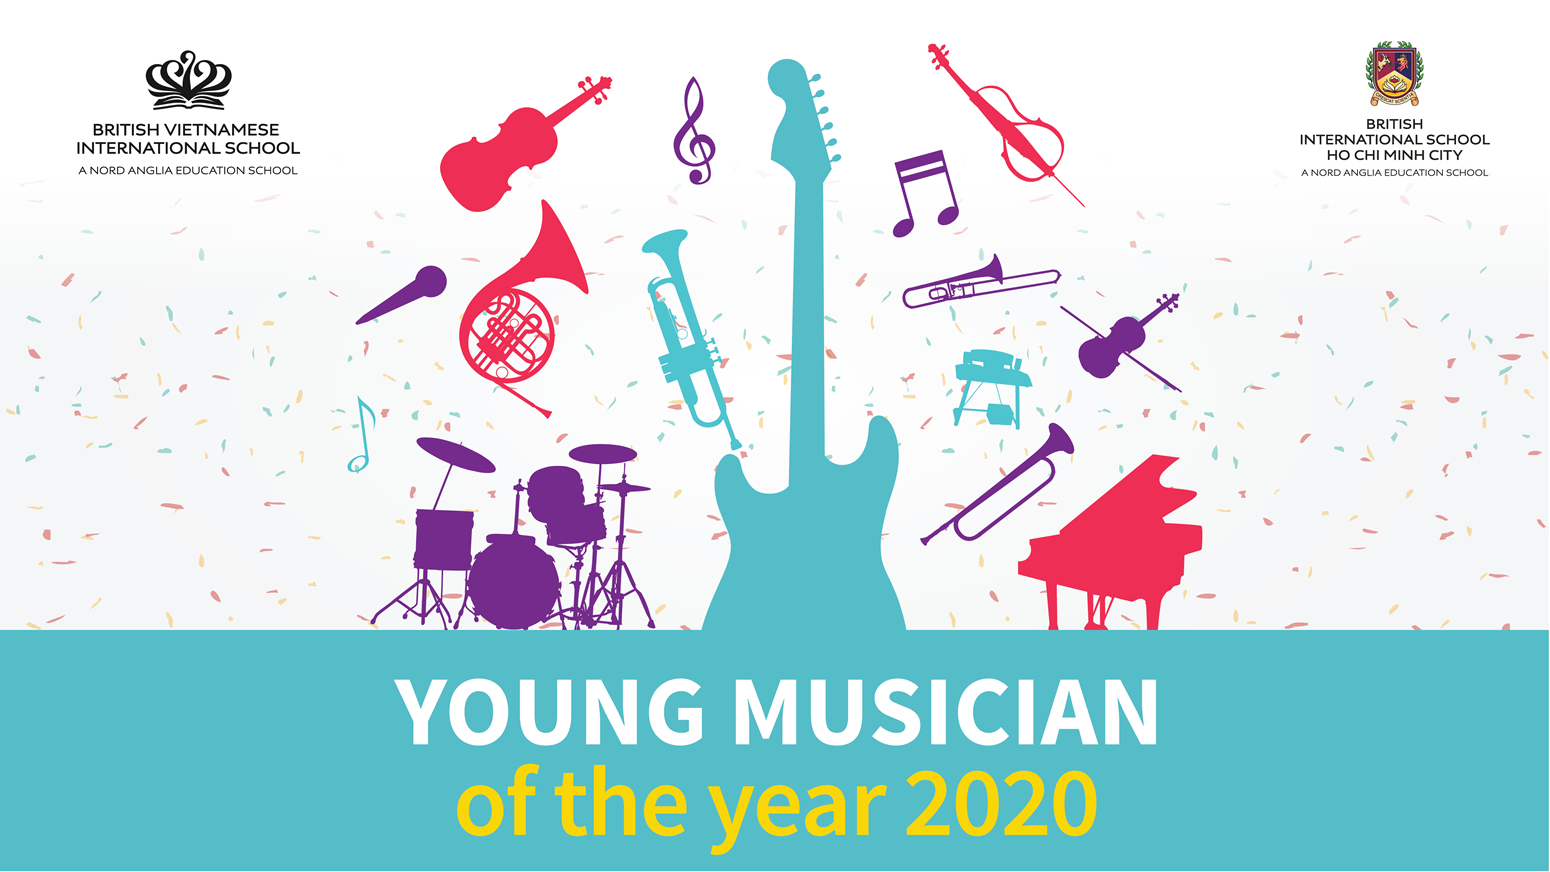 BVIS HCMC Young Musician of the Year 2020